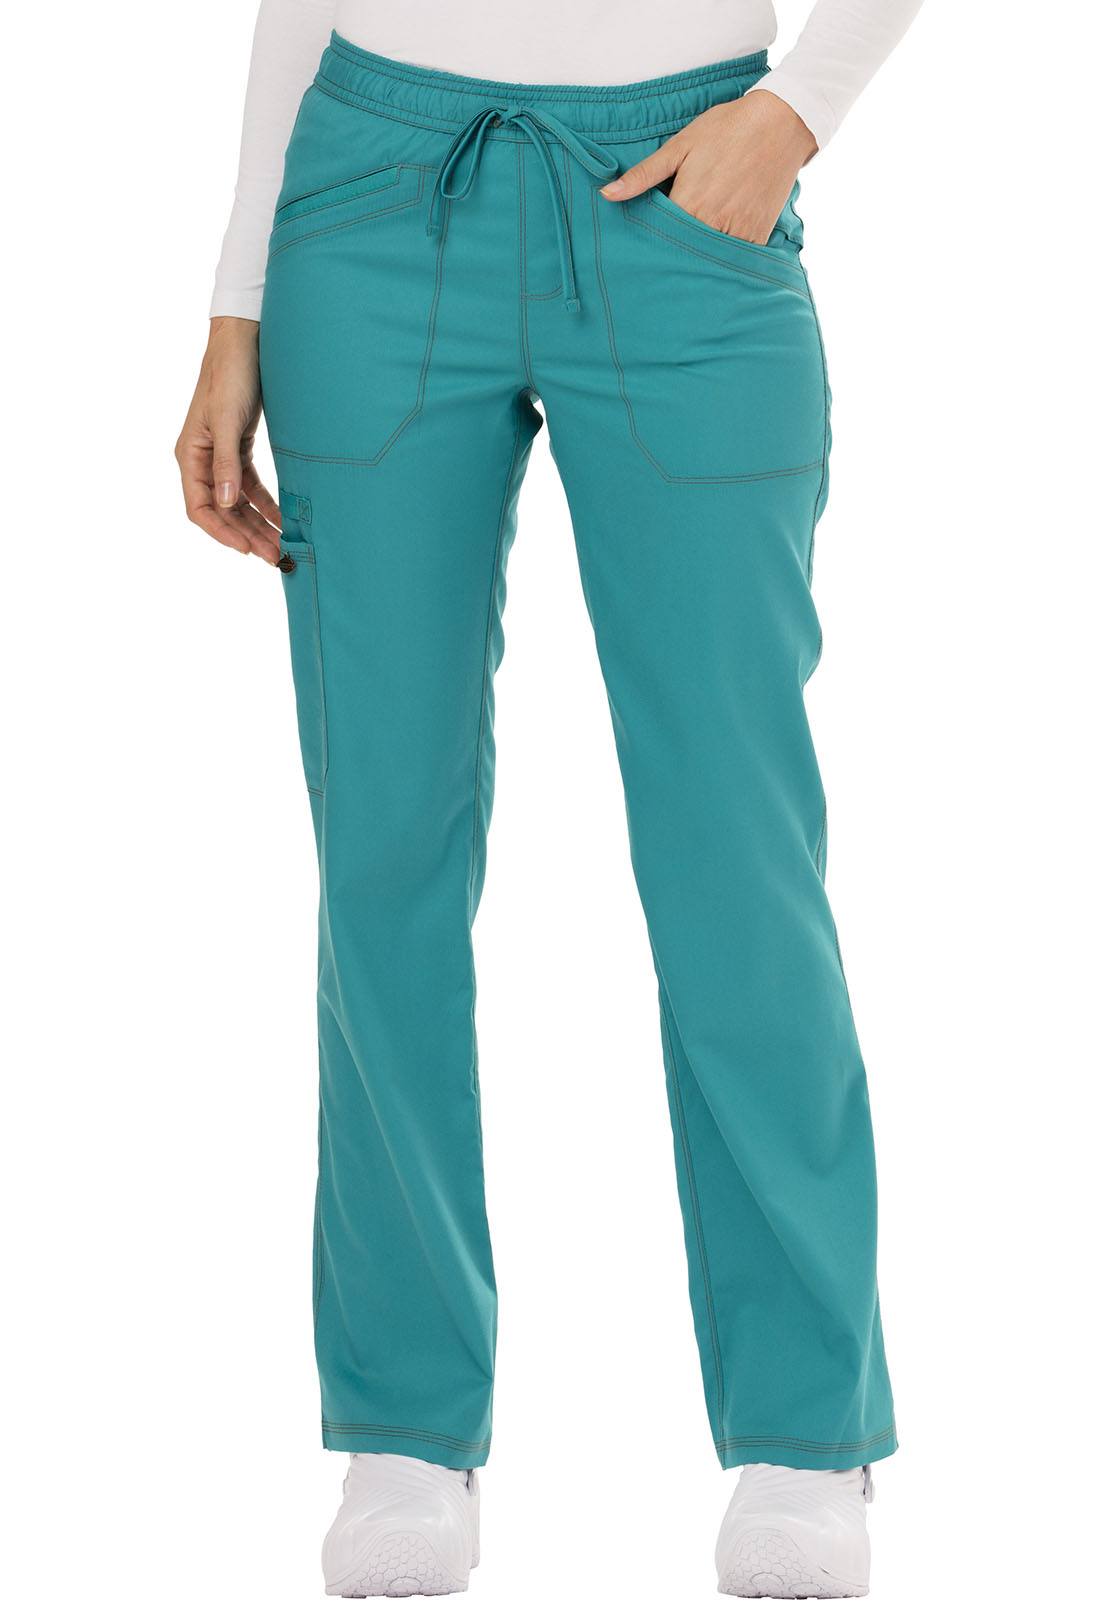 8cea76e3cec Essence Mid Rise Straight Leg Drawstring Pant in Teal Blue DK106-TLB ...